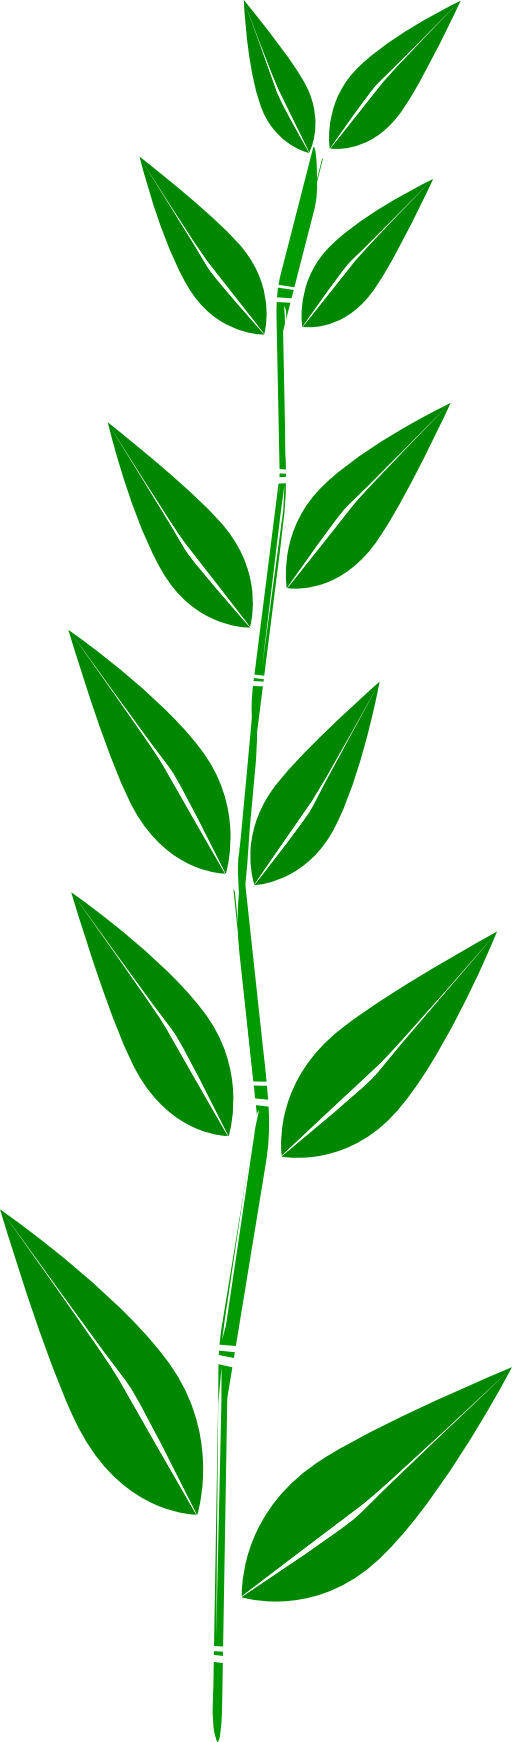 free clipart green leaf - photo #34